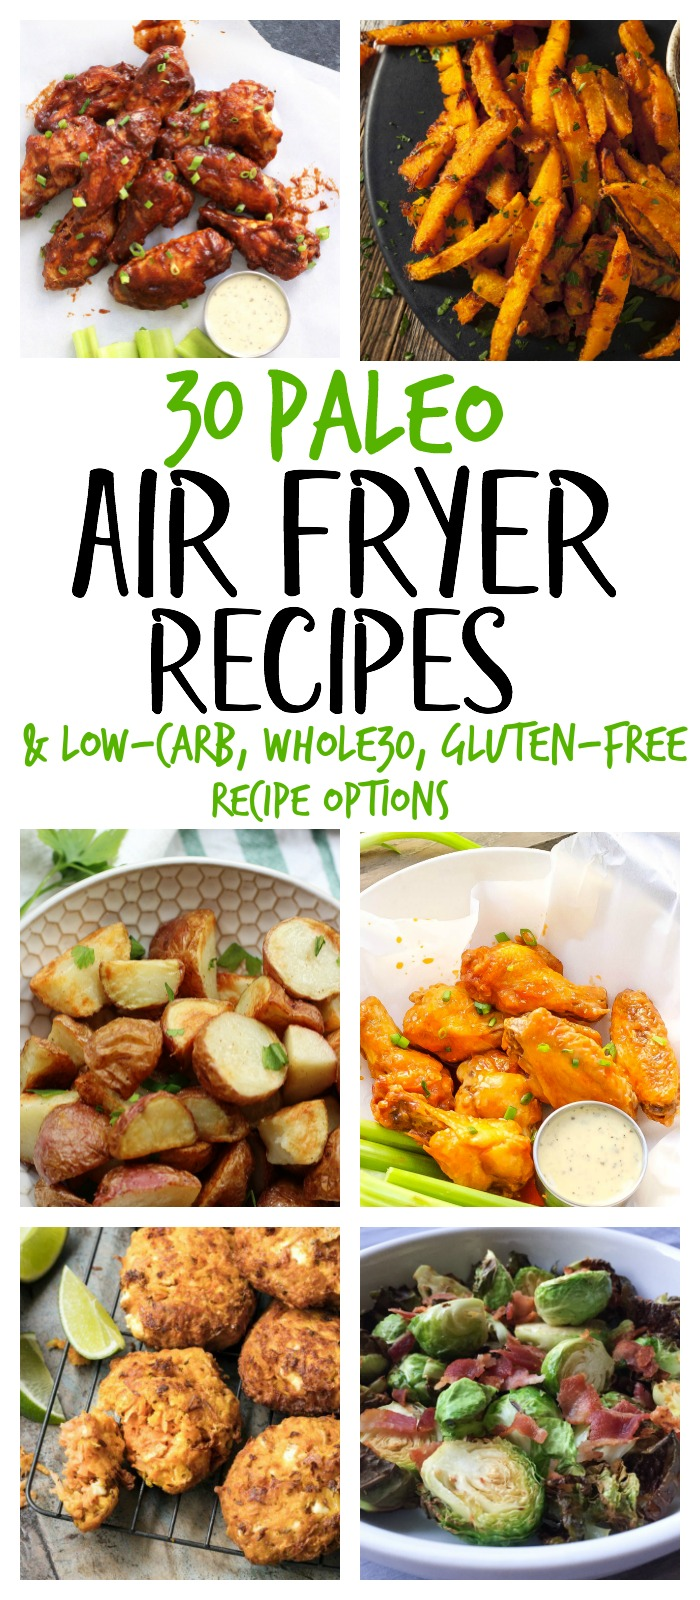 30 Paleo Air Fryer Recipes Gluten Free Whole30 Whole Kitchen Sink